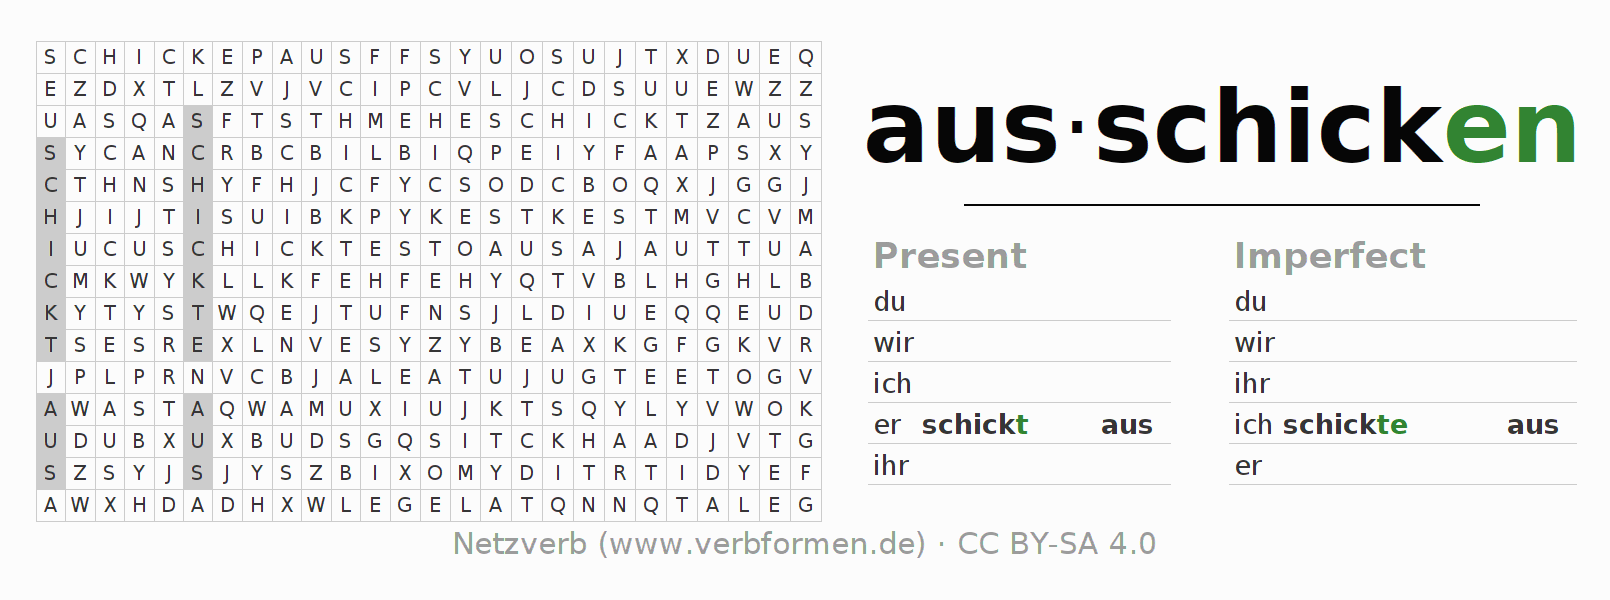 Word search puzzle for the conjugation of the verb ausschicken